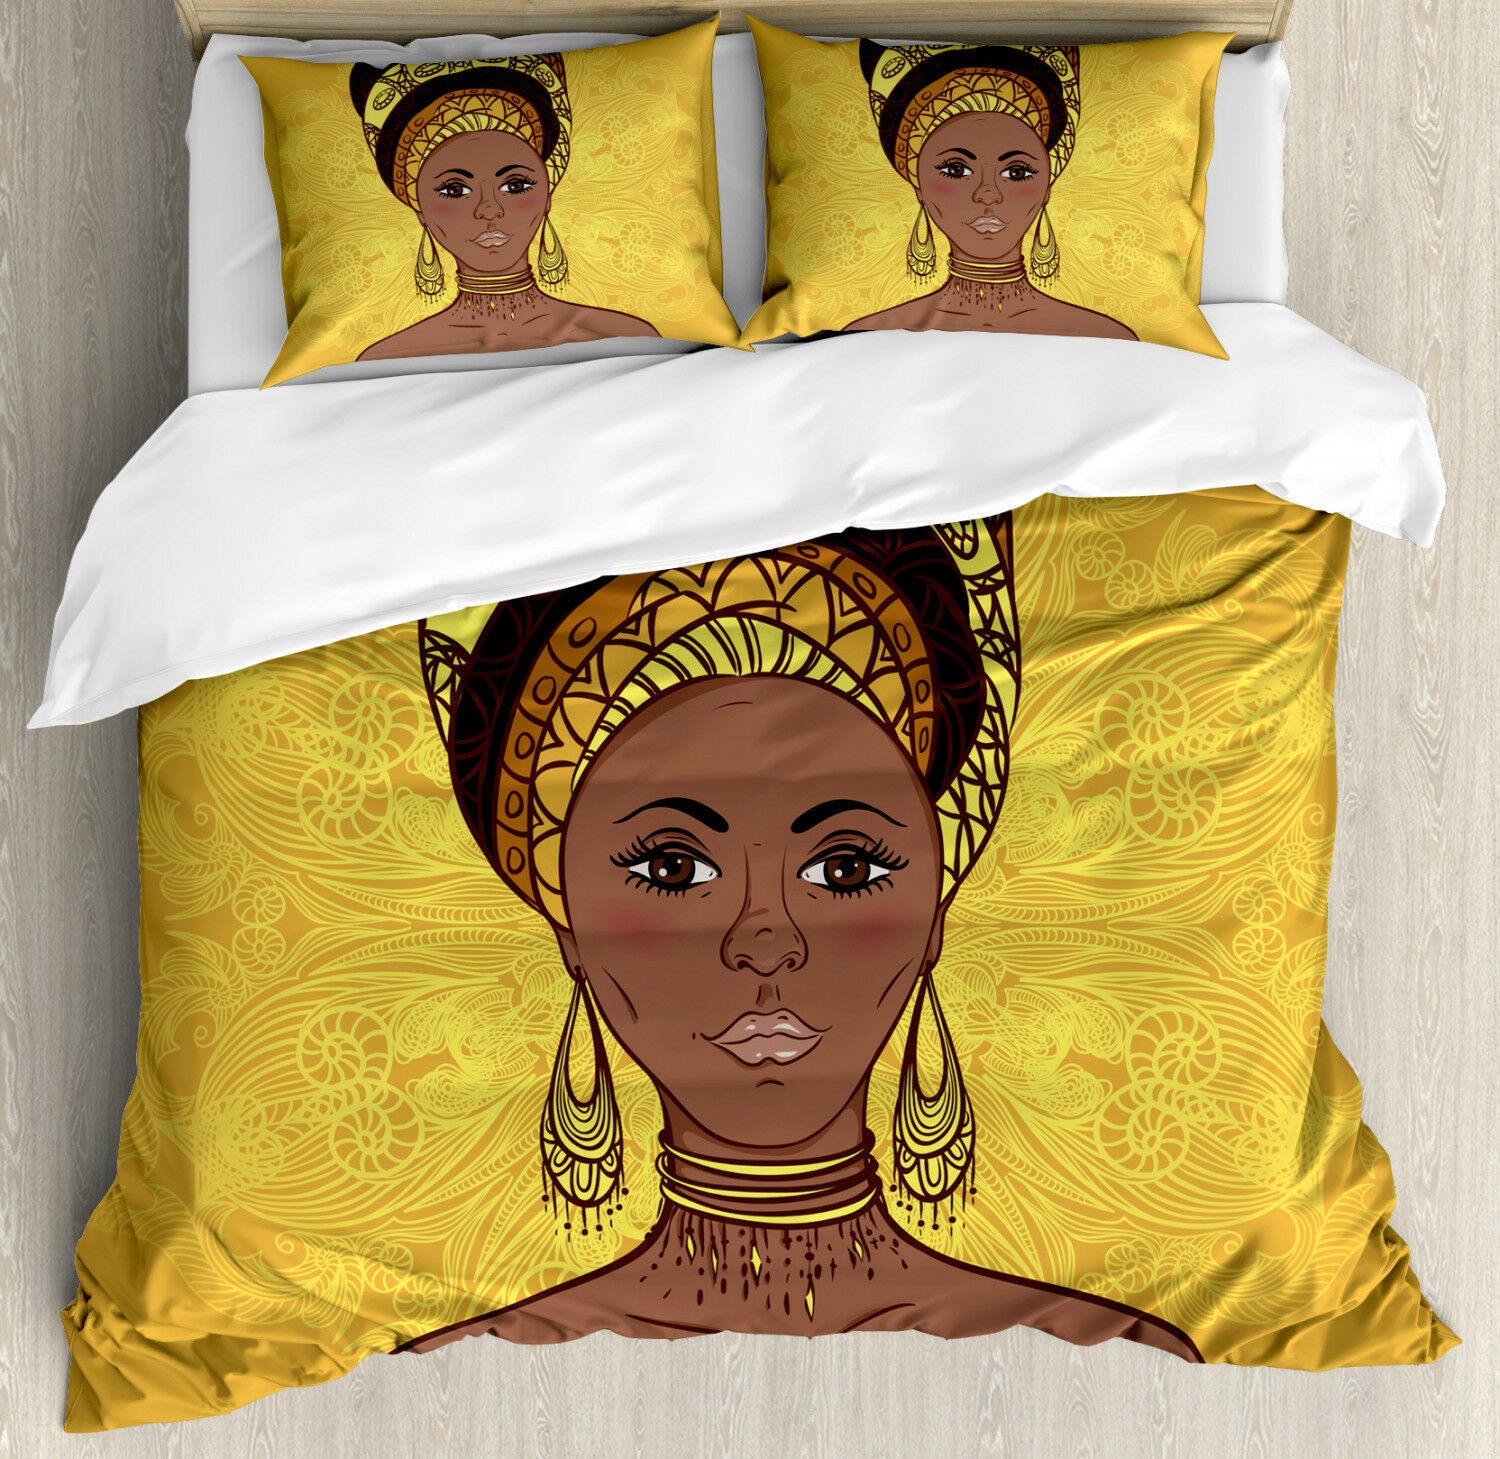 African Woman Duvet Cover Set with Pillow Shams Tribal Portrait Print